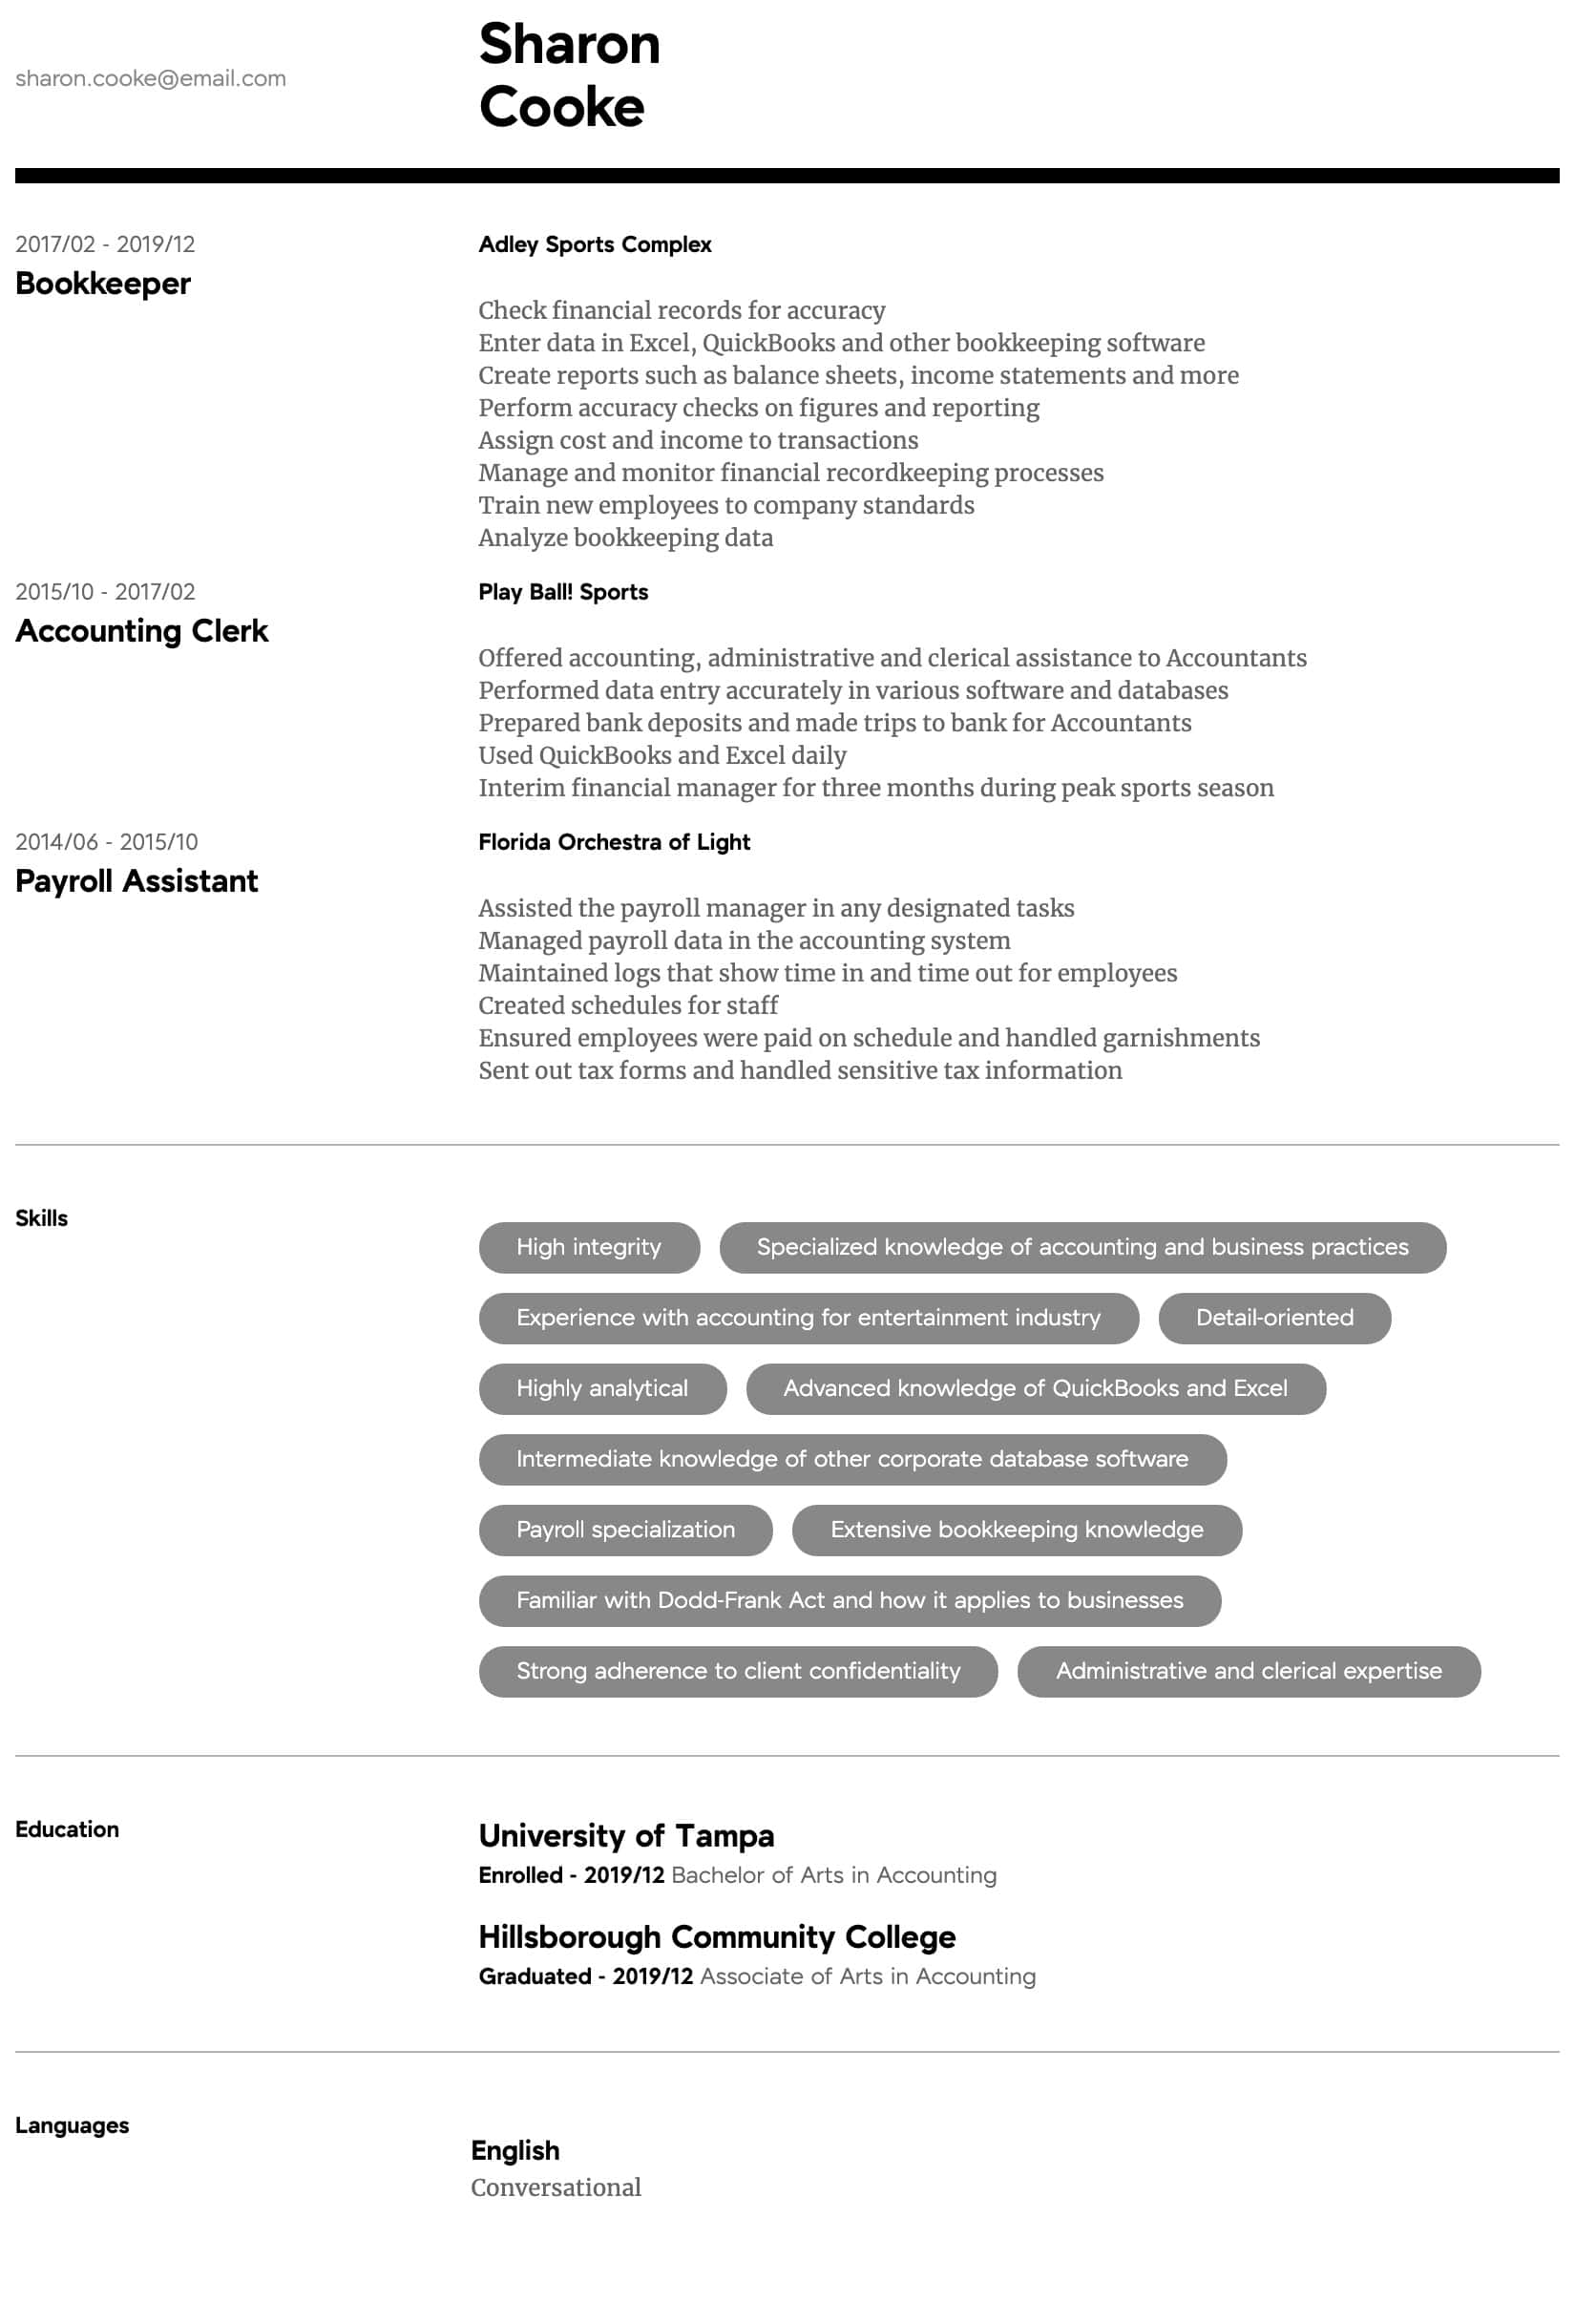 accountant resume samples all experience levels staff intermediate meat department sample Resume Staff Accountant Resume